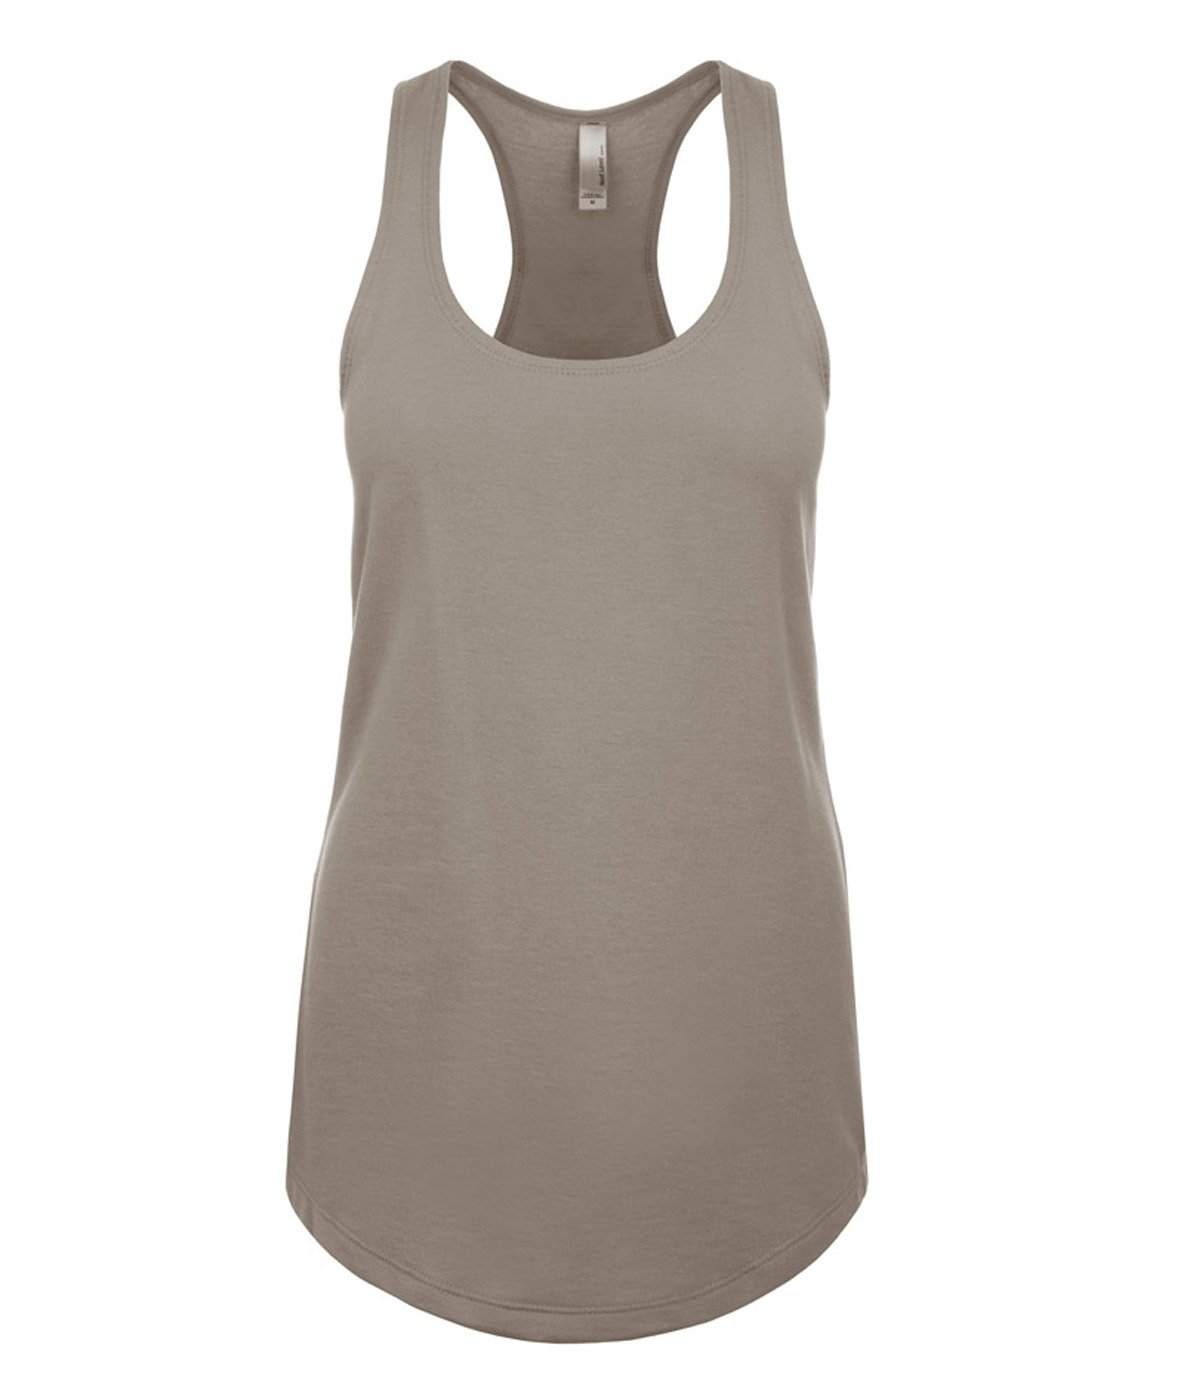 Next Level Ideal Racerback Tank Warm Gray X-Large (Pack of 5)